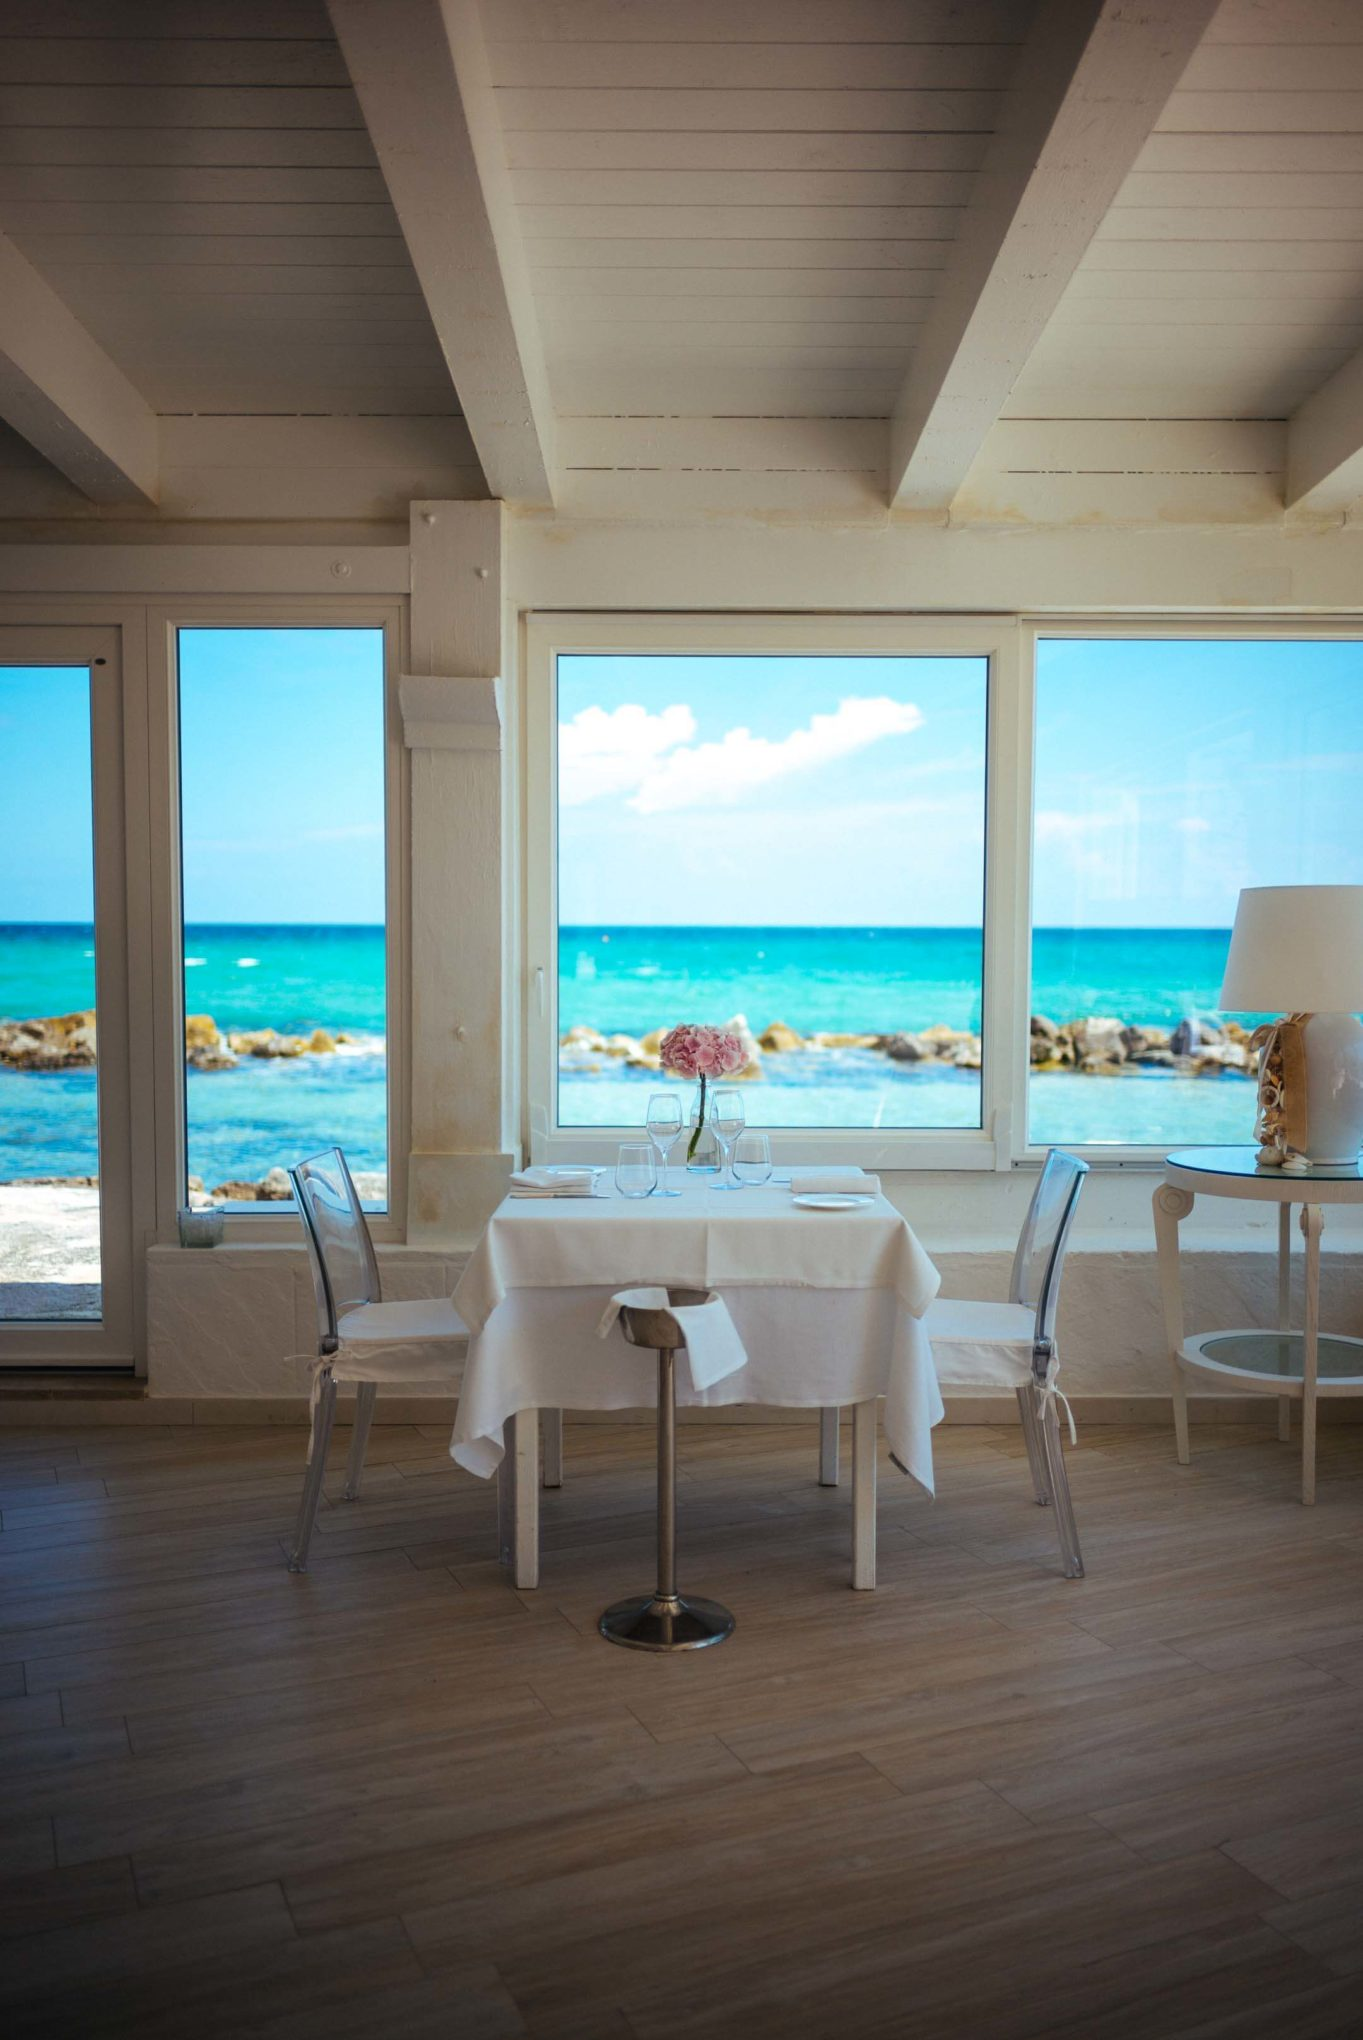 Eat at the Sale Blu restaurant for fresh fish and pasta with a beautiful view of the ocean, located at the luxury Puglia hotel La Peschiera  just south of Monopoli, Italy, The Taste Edit t